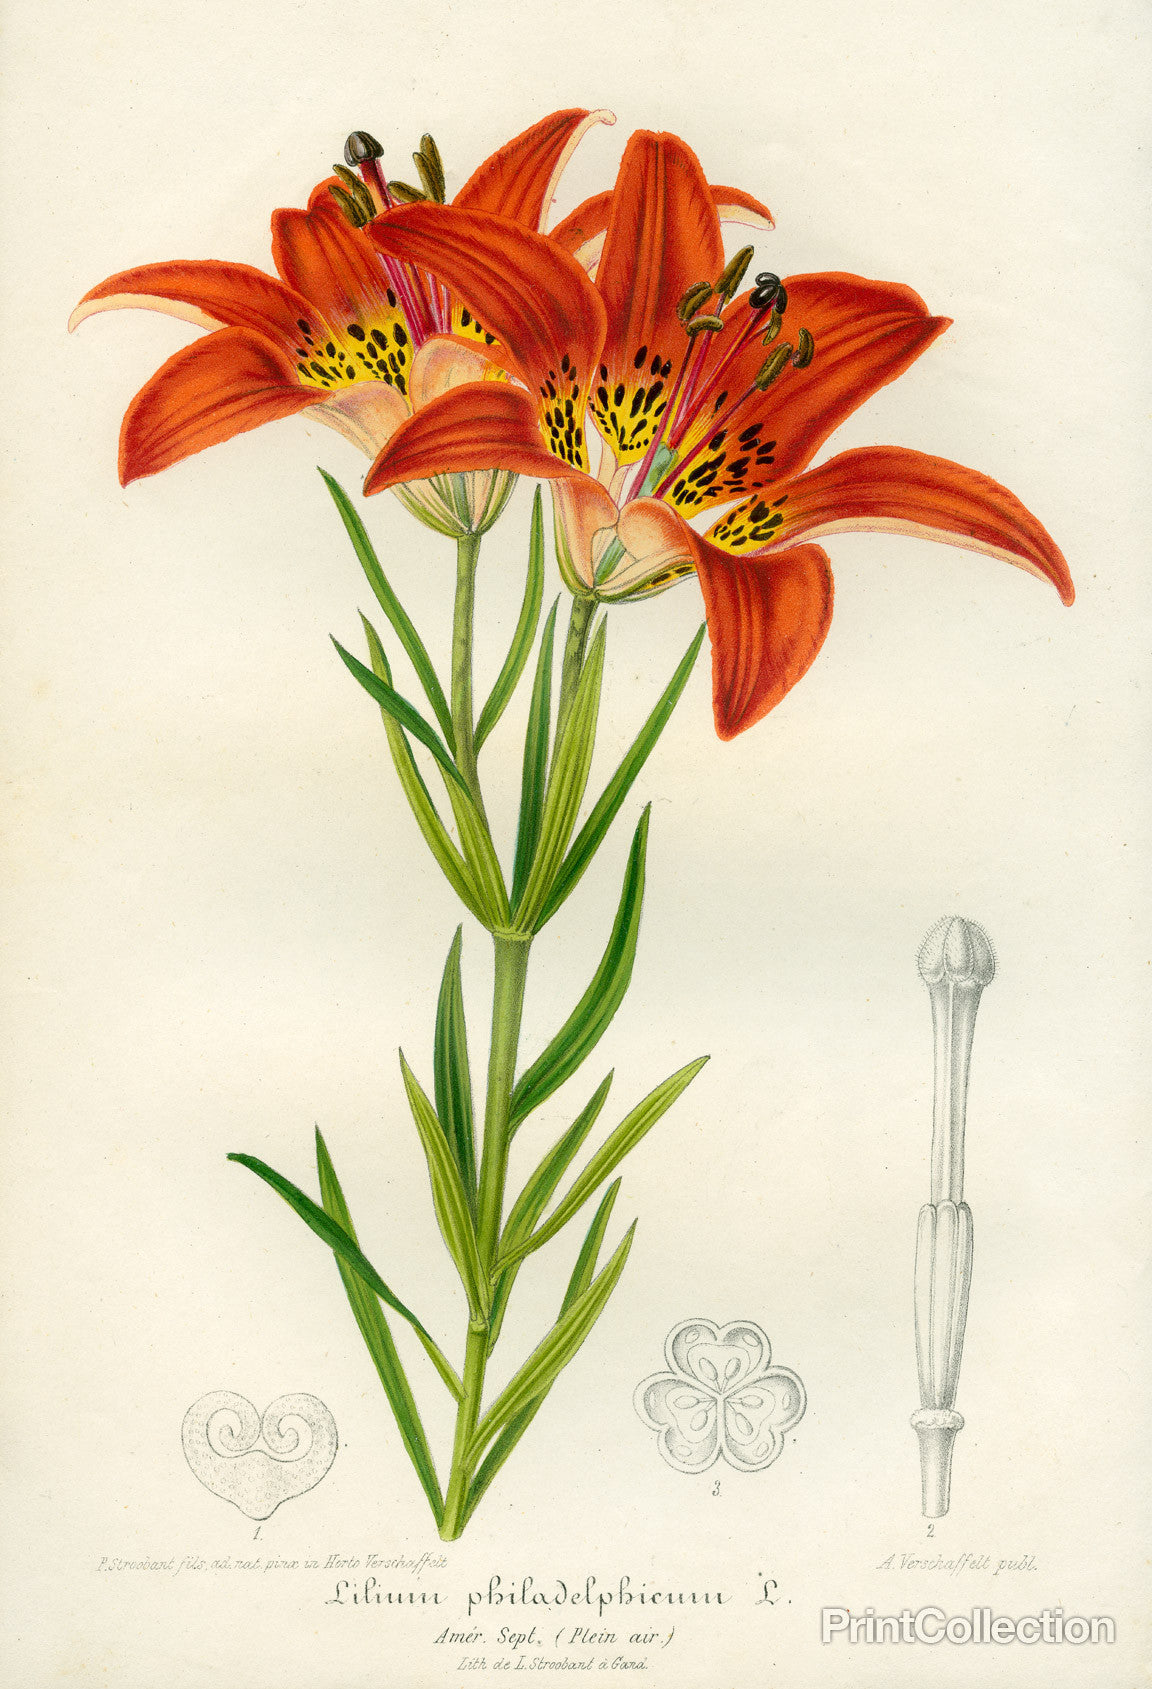 Print collection western red lily western red lily izmirmasajfo